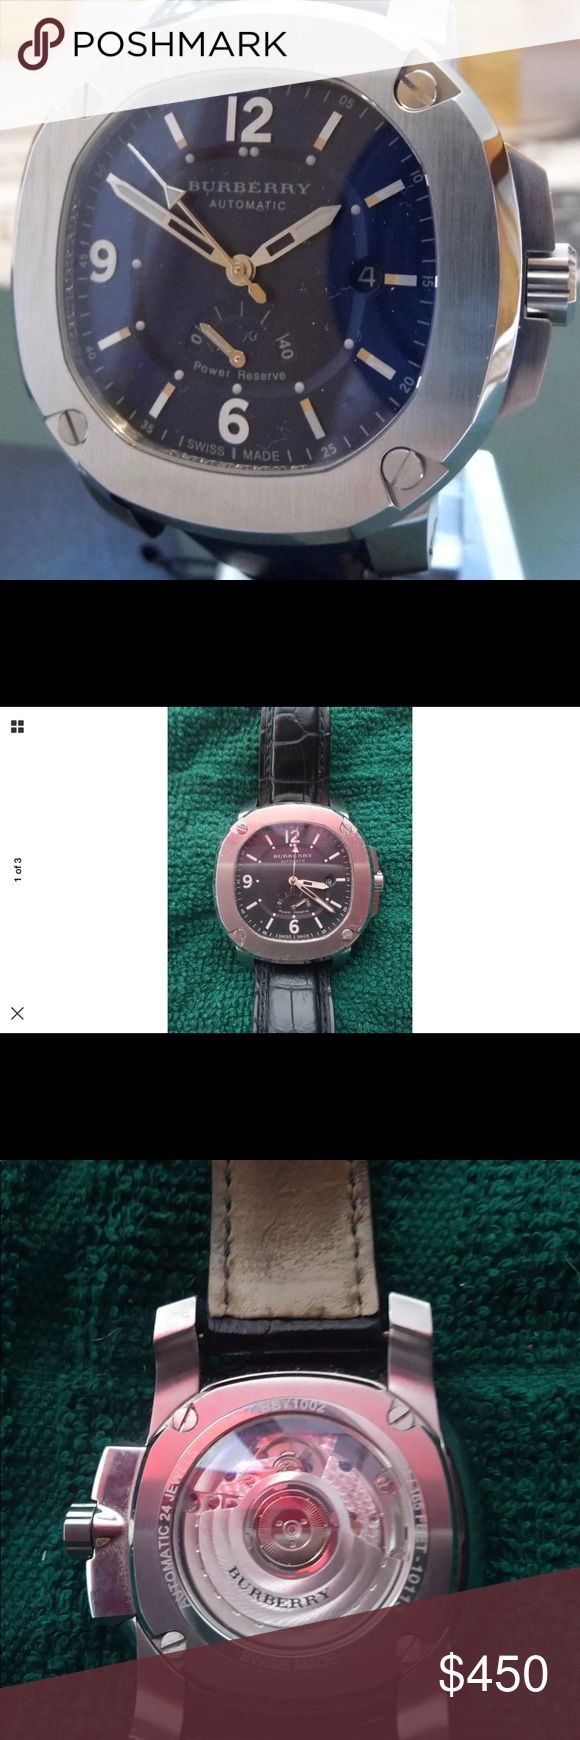 Burberry men's watch. In great working condition. Model # BBY1002 Burberry Accessories Watches